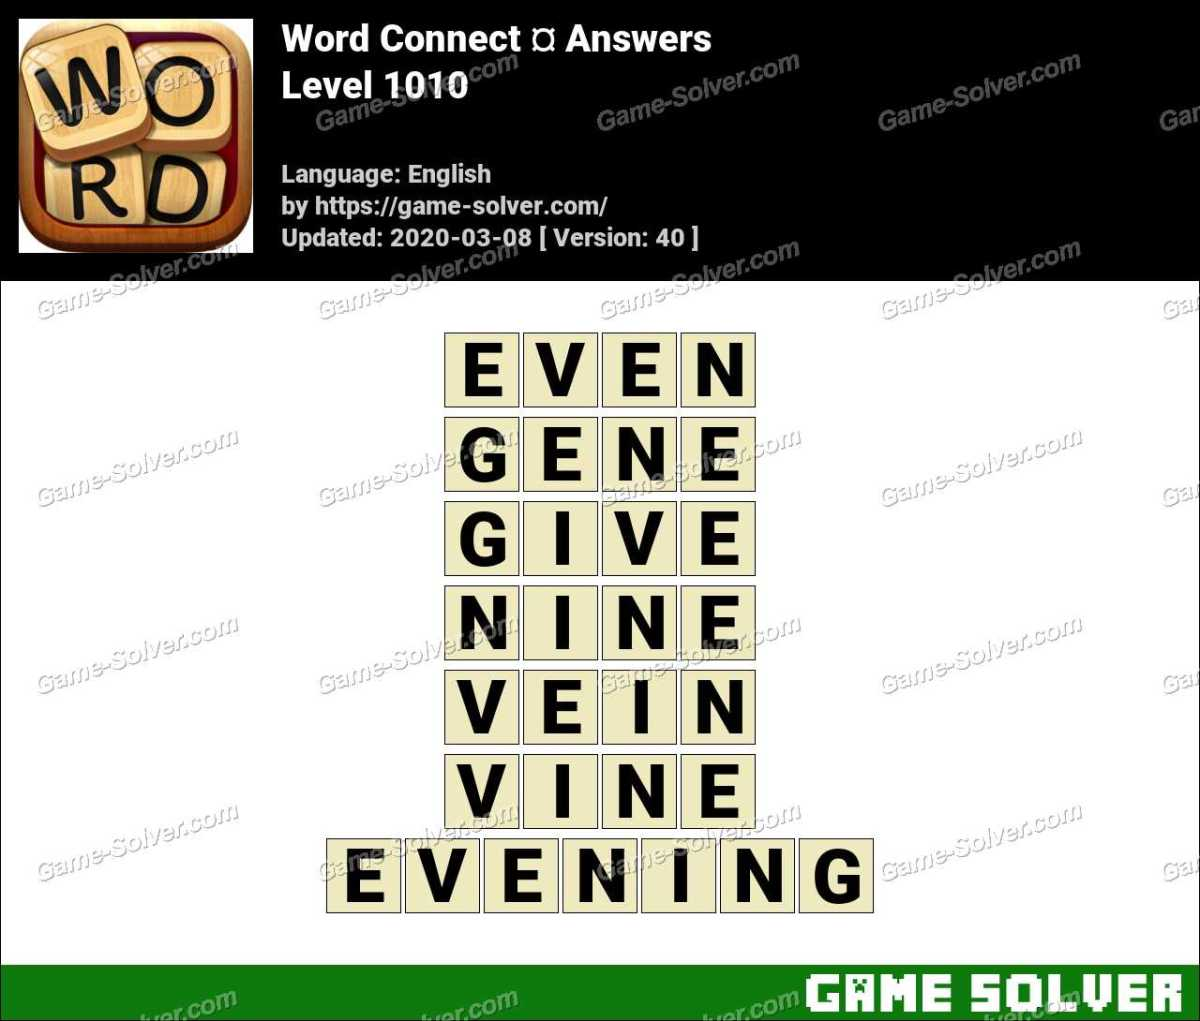 Word Connect Level 1010 Answers